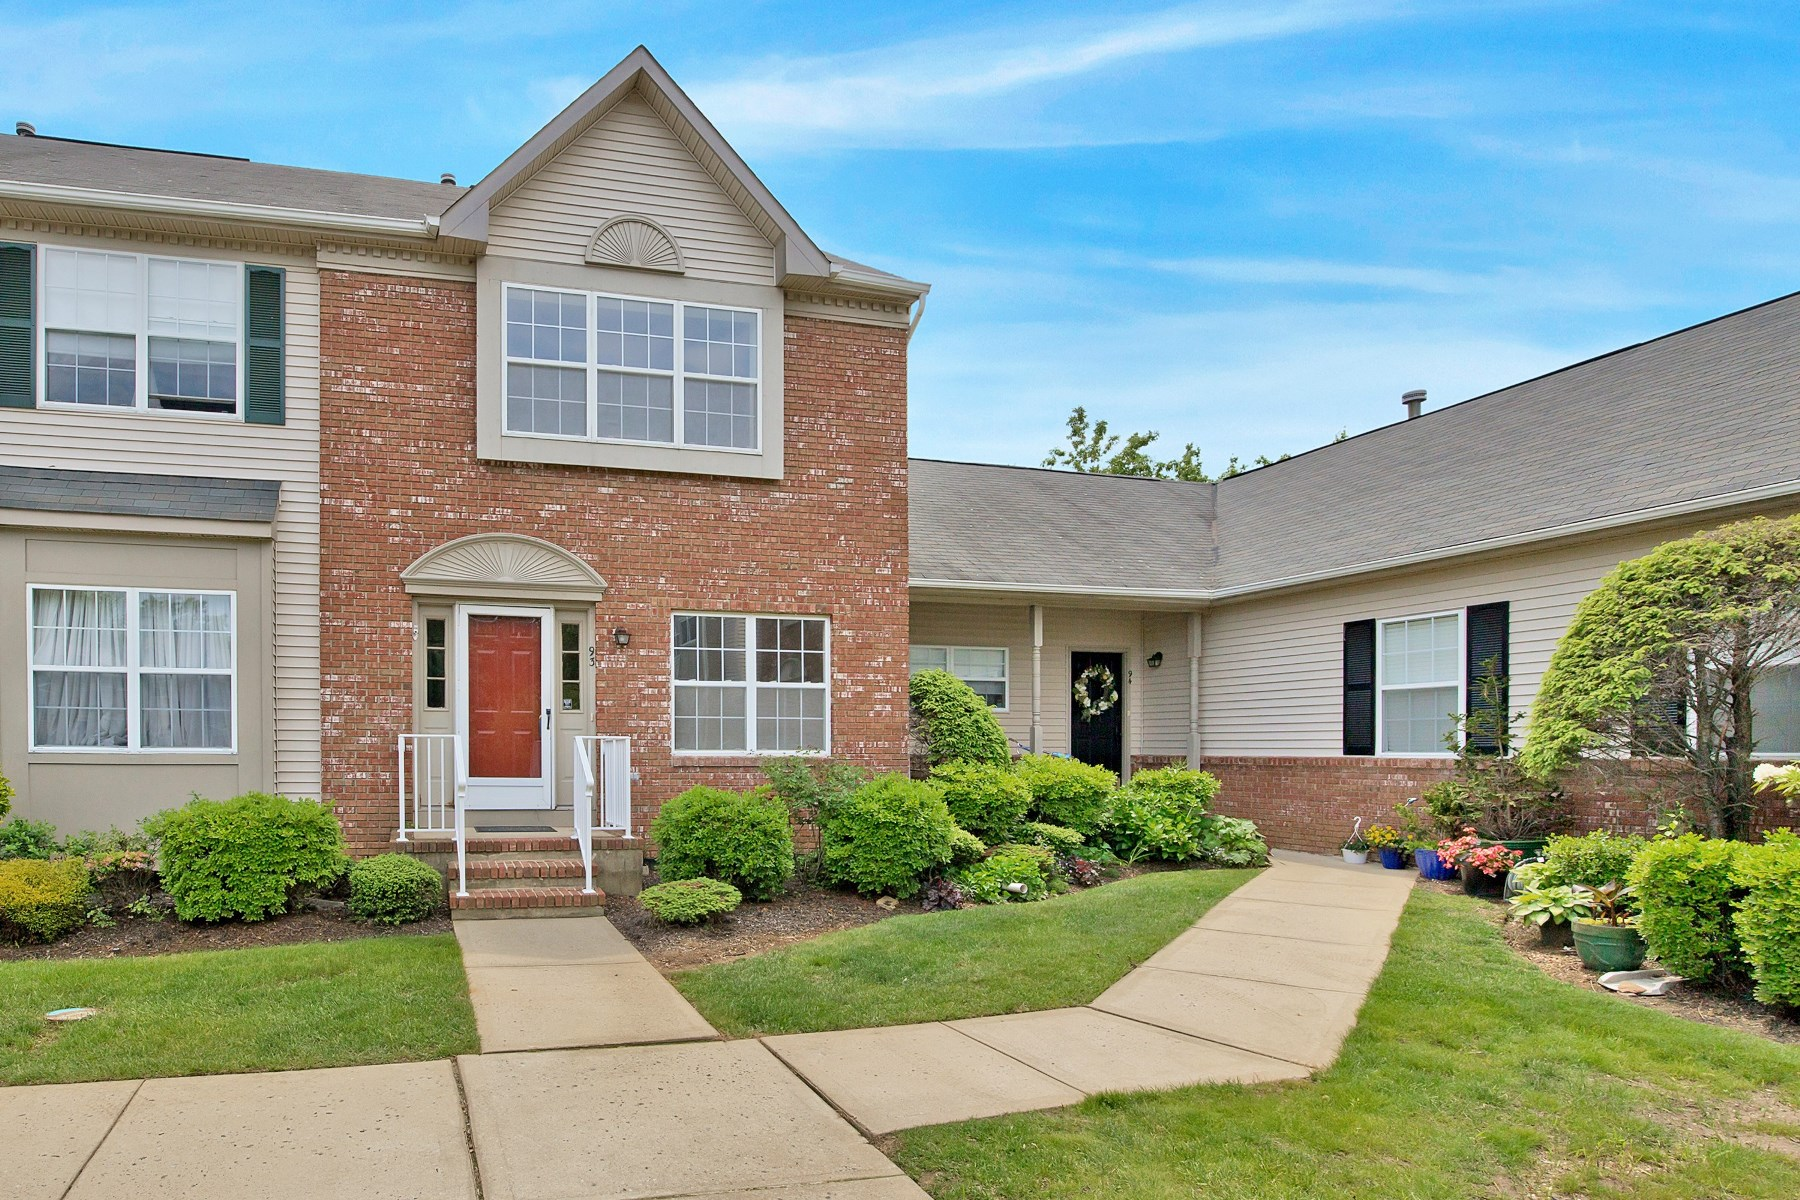 Townhouse for Sale at Wonderfully located Townhouse 93 Cranbrook Ct Holmdel, New Jersey 07733 United States